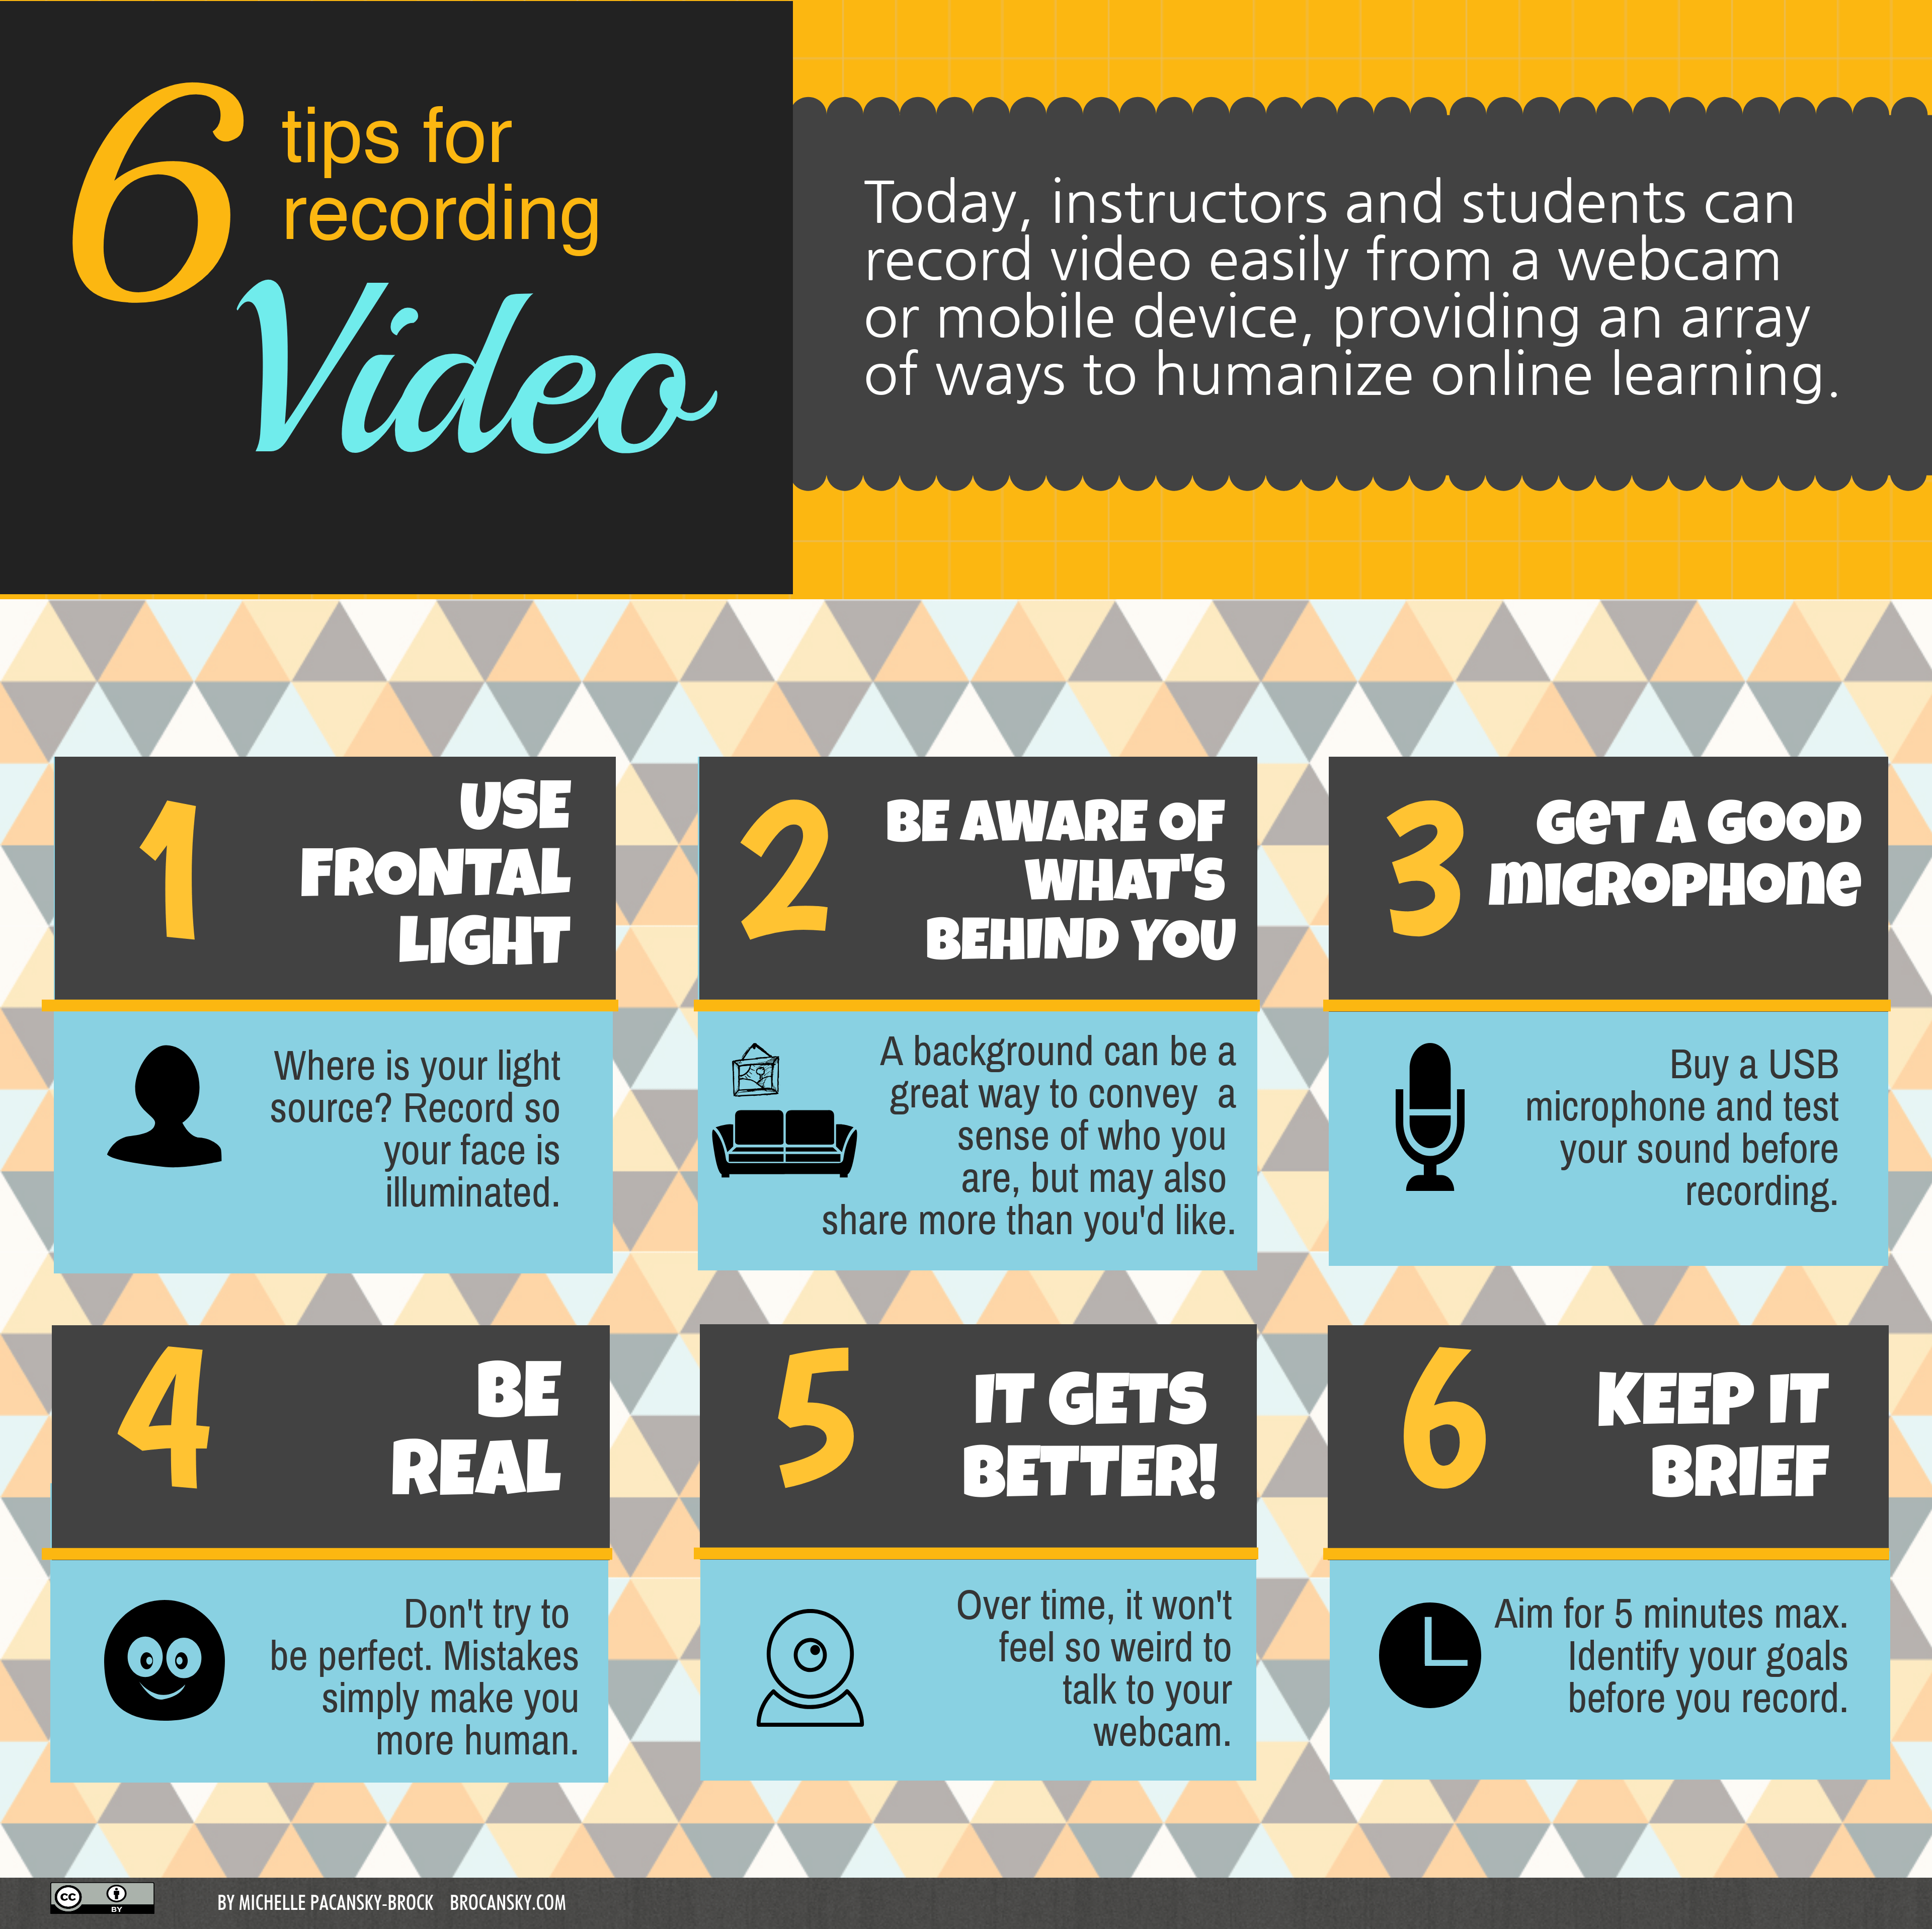 6 Tips for Recording Video. Today, instructors and students can record video easily from a webcam or mobile device, providing an array of ways to humanize online learning. 1. Use Frontal Light. Where is your light sourc e? Record so your face is illuminated.  2. Be Aware of What's Behind You.  A background can be a great way to convey a sense of who you are, but may also share more than you'd like. 3. Get a Good Microphone. Buy a USB microphone and test your sound before recording. 4. Be Real. Don't try to be perfect. Mistakes simply make you more human. 5. It Gets Better! Over time, it won't feel so weird to talk to your webcam.  6. Keep It Brief. Aim for 5 minutes max. Identify your goals before you record.